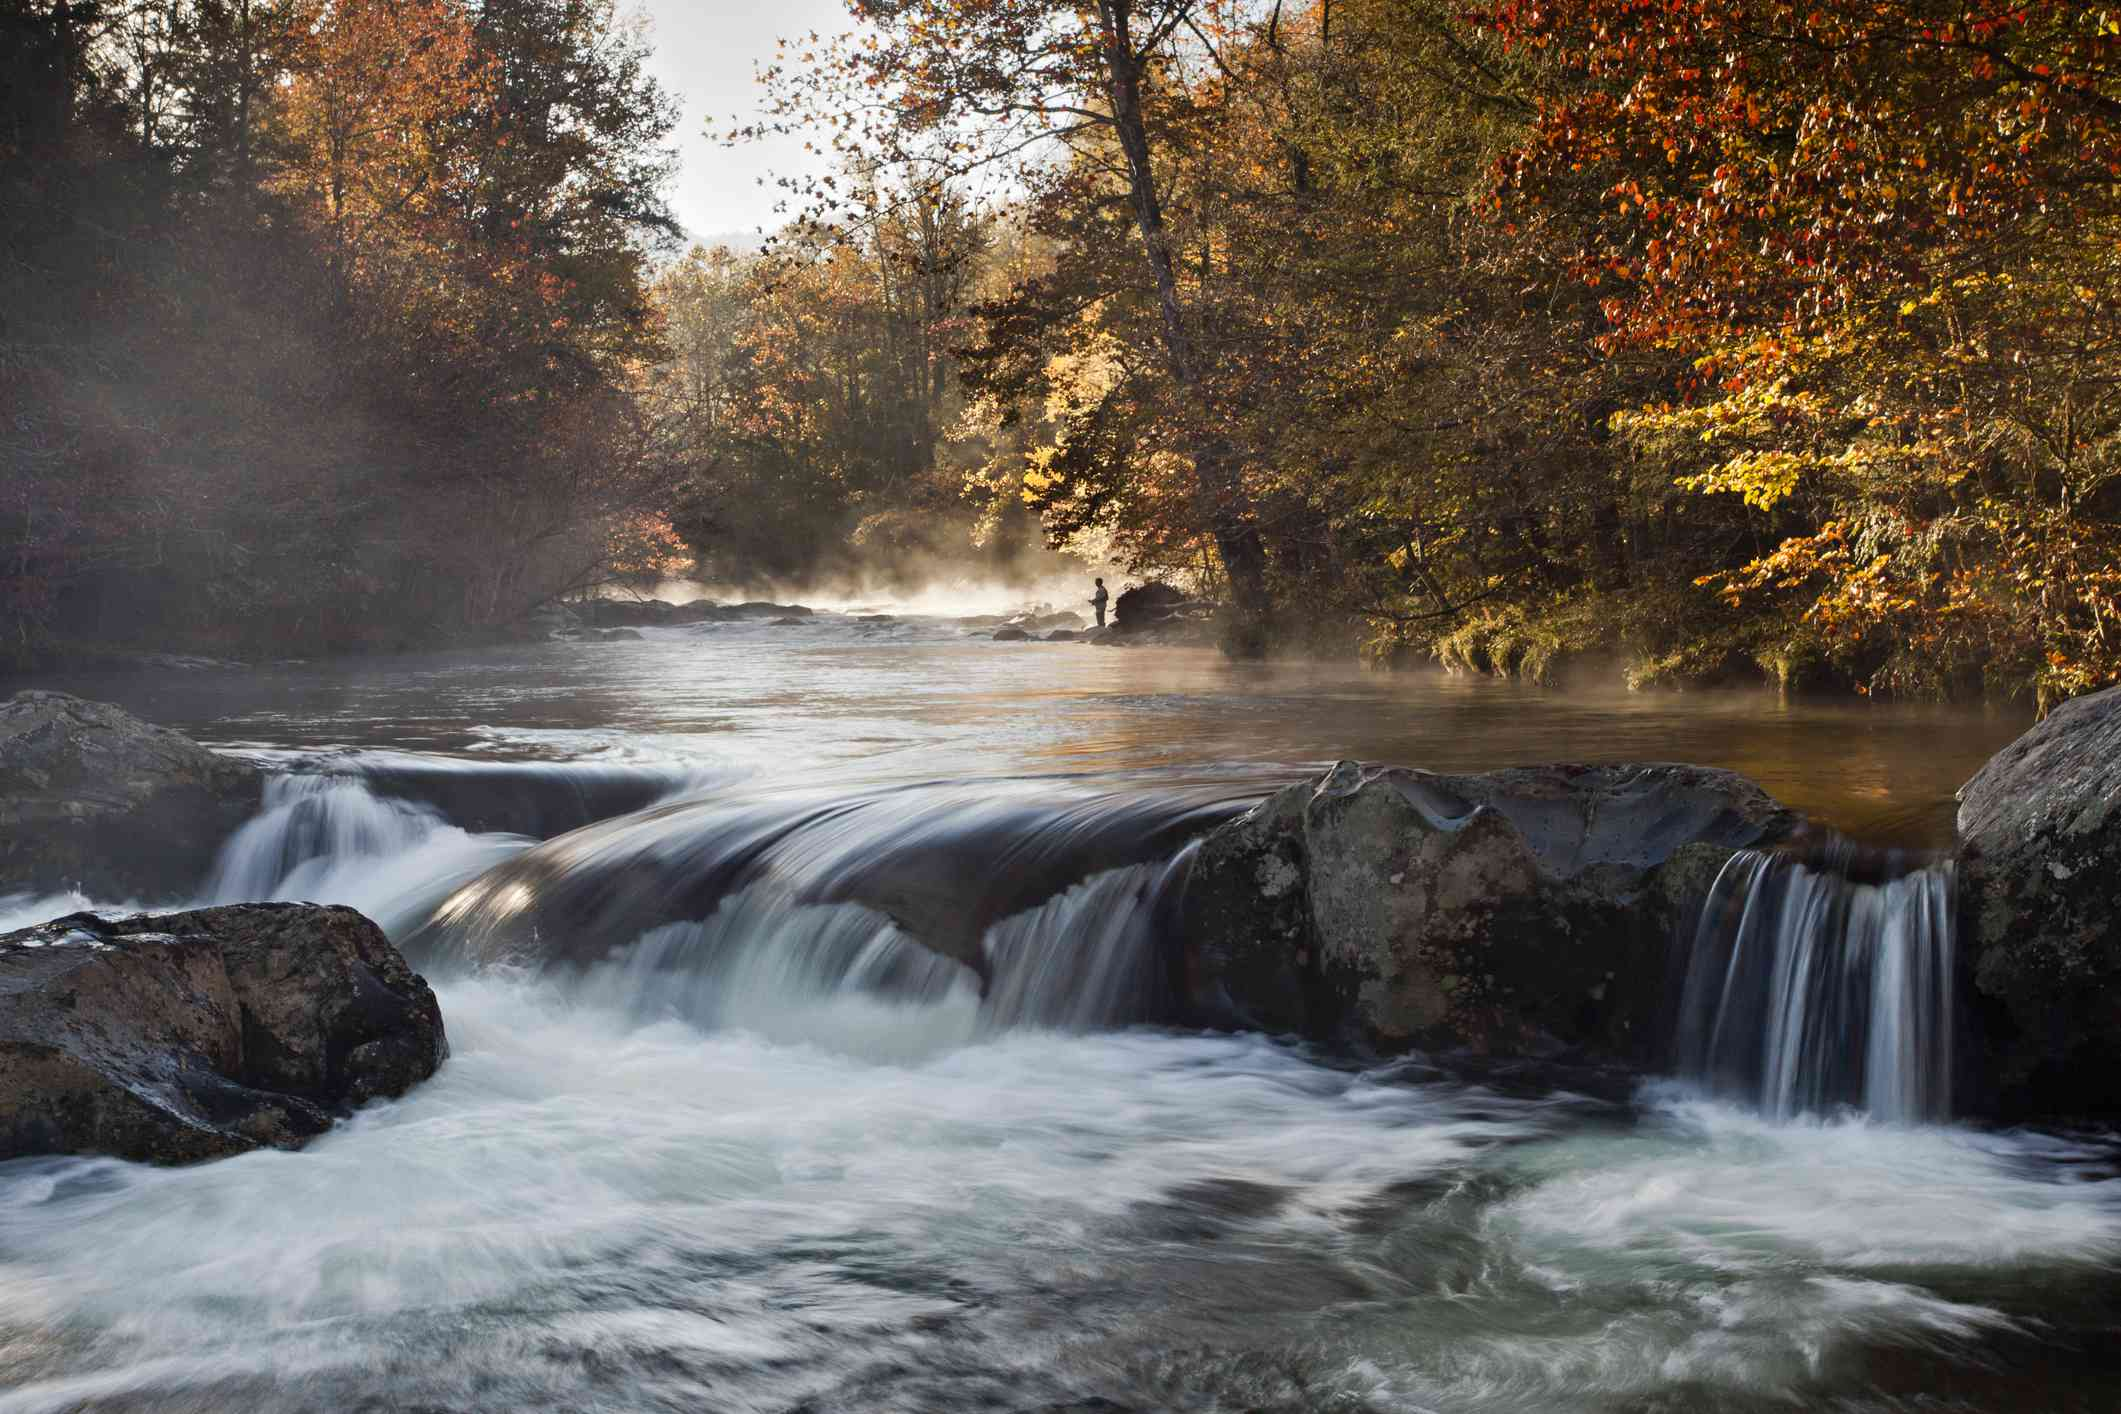 water rushing over large rocks surrounded by trees in autumn shades of red and orange wit a fisherman in the distance